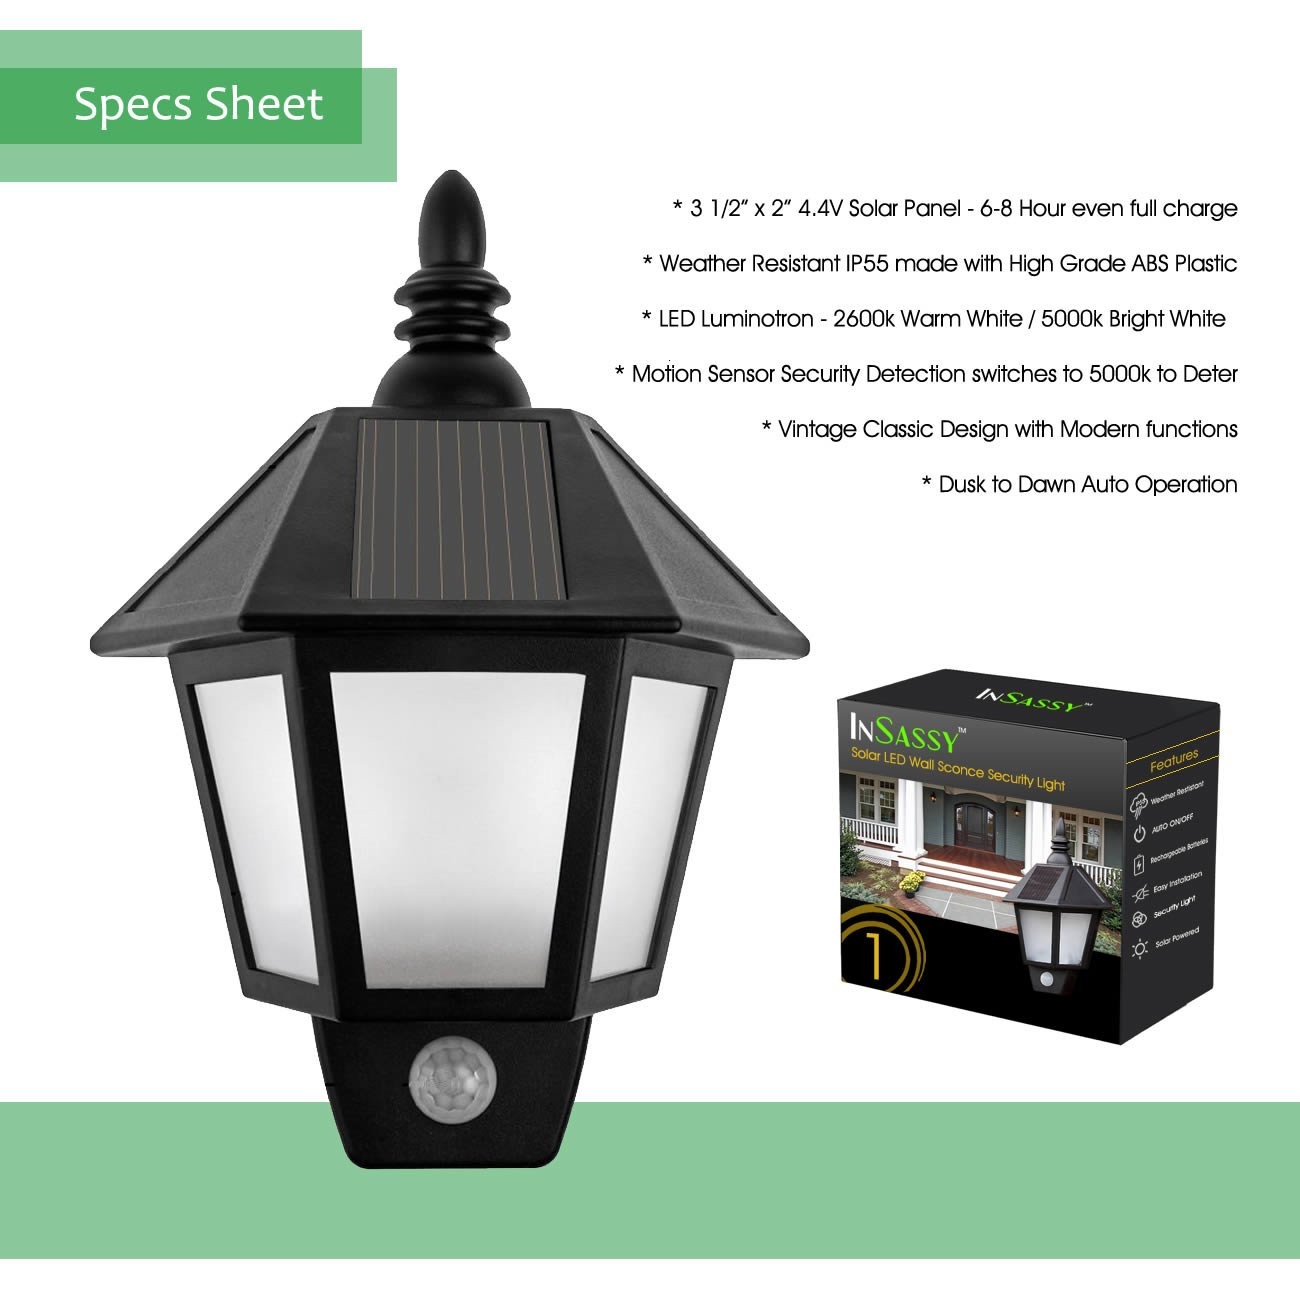 Solar Wall Sconce Lights Outdoor Security With Motion Sensor By